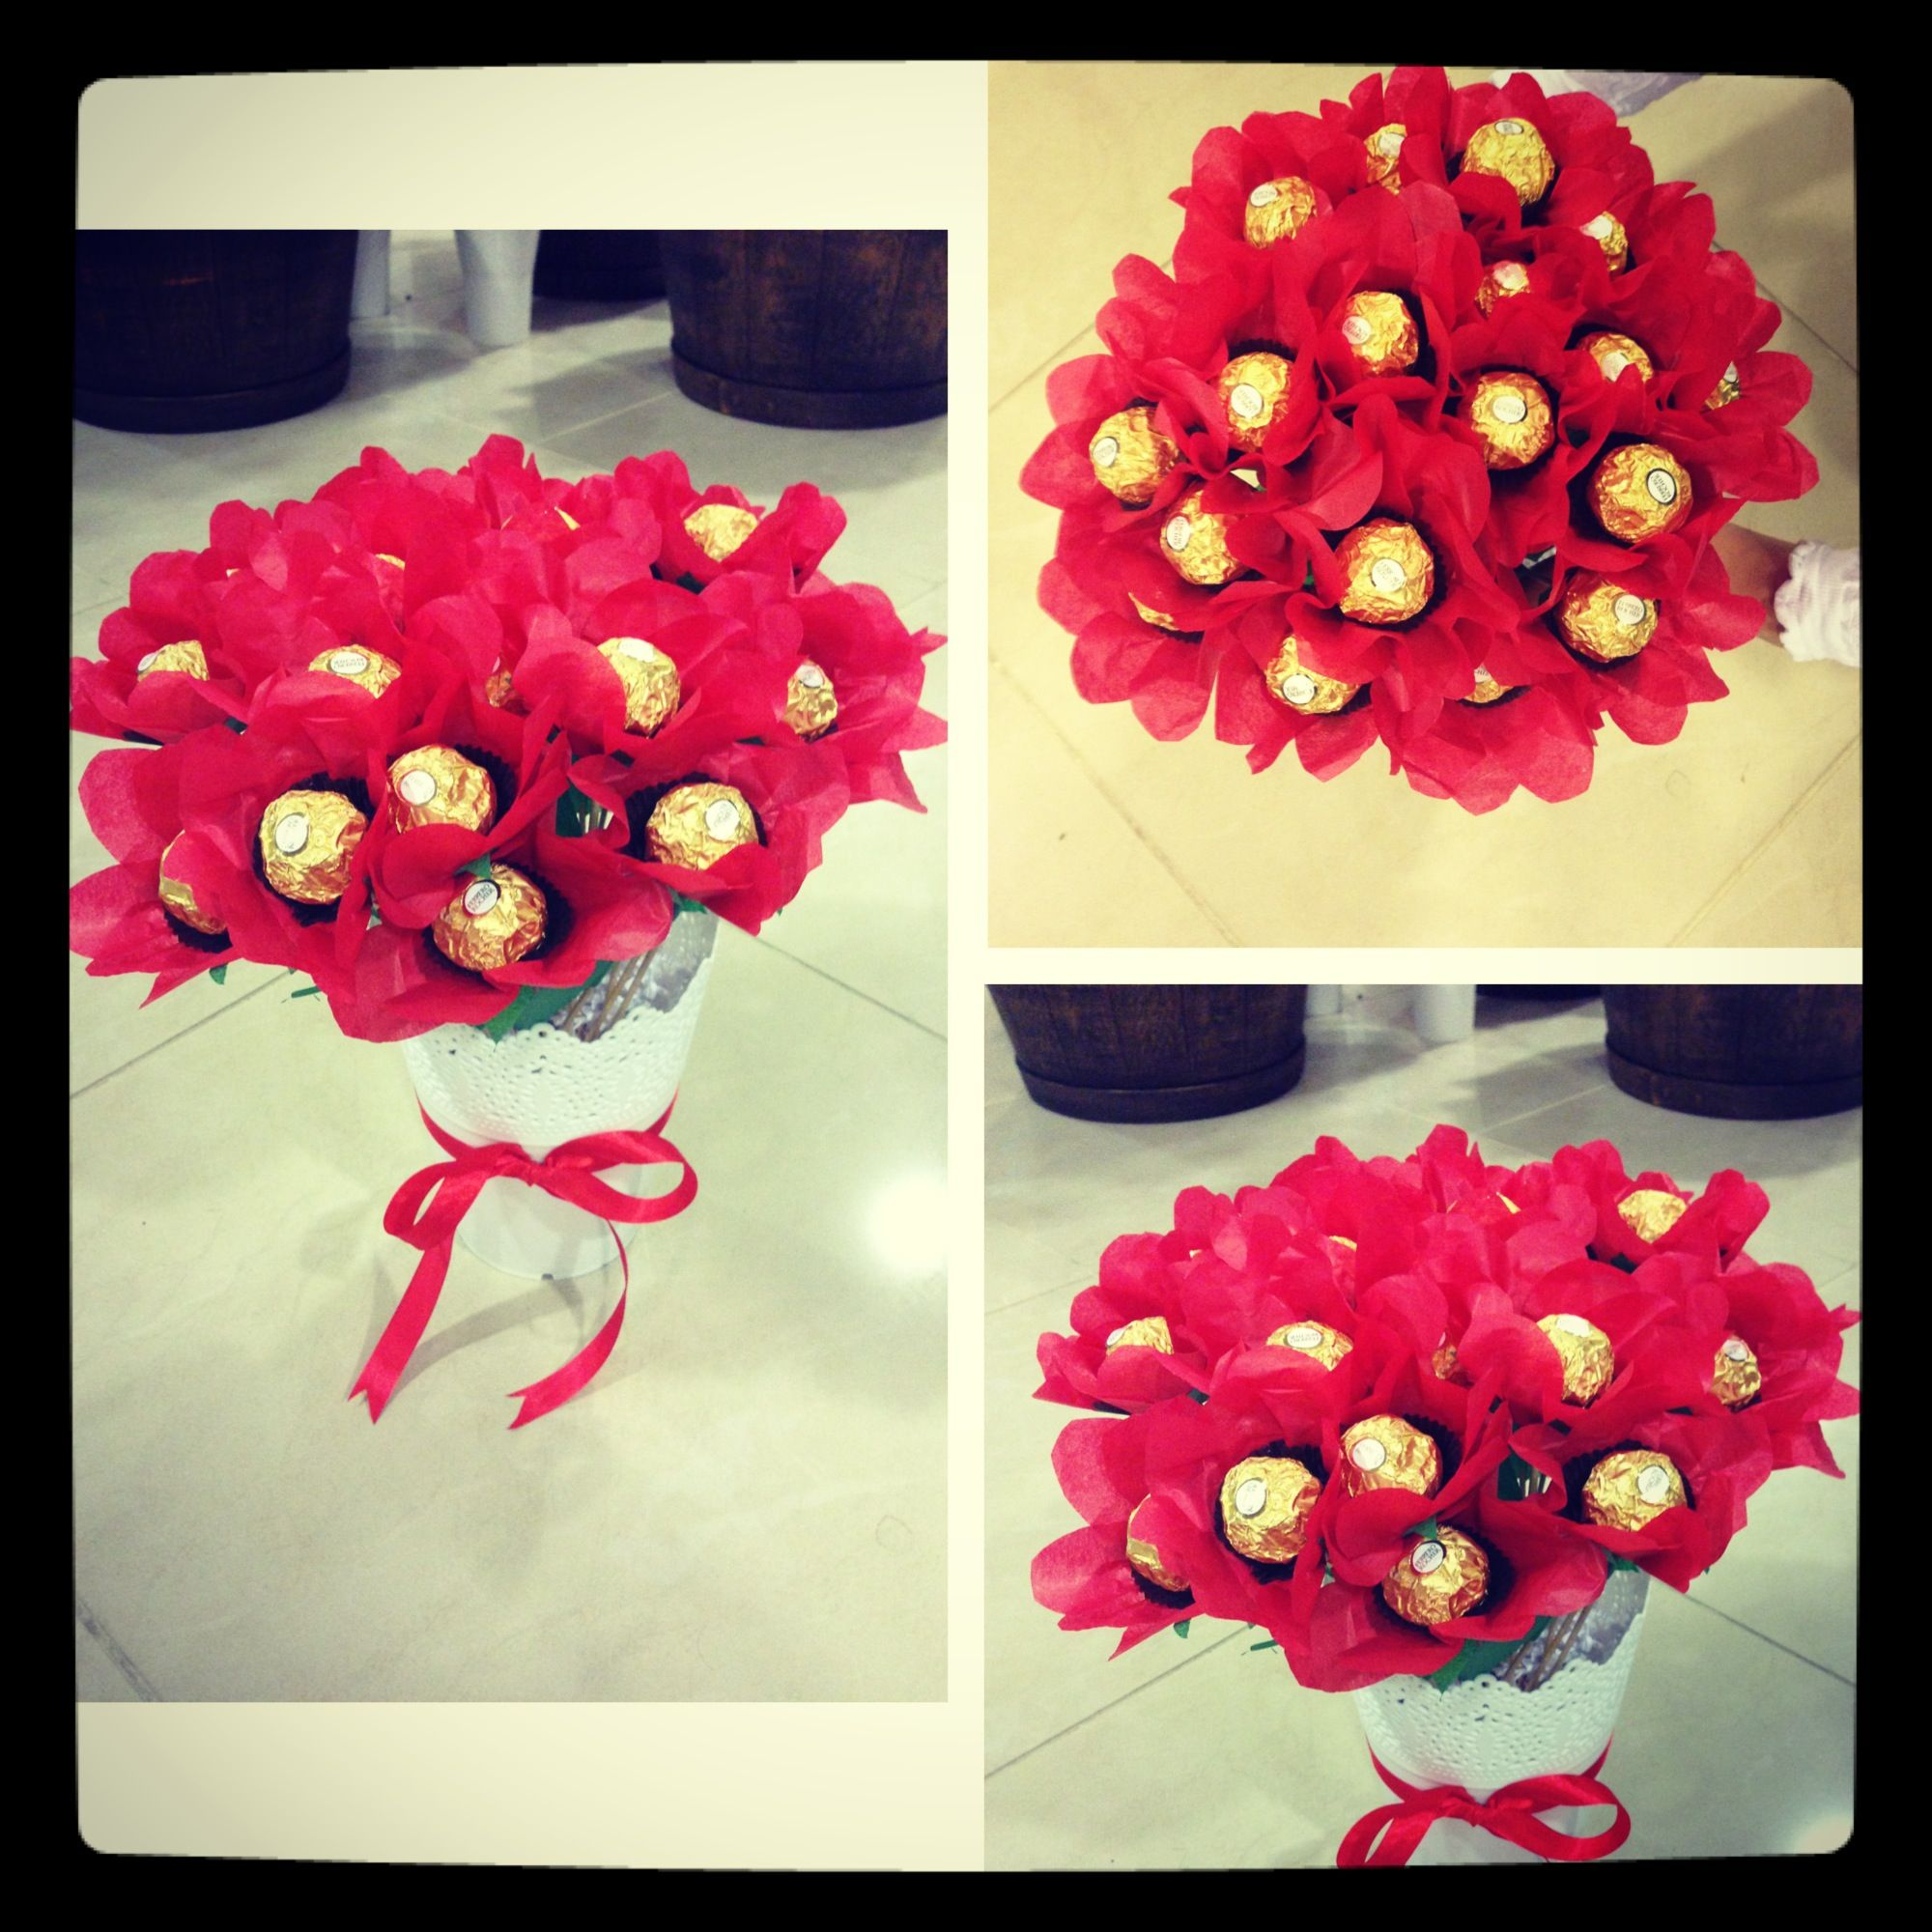 Chocolate bouquet on pinterest candy flowers bouquet of chocolate - Ferrero Rocher Chocolate Bouquet Red Flowers With White Plant Pot